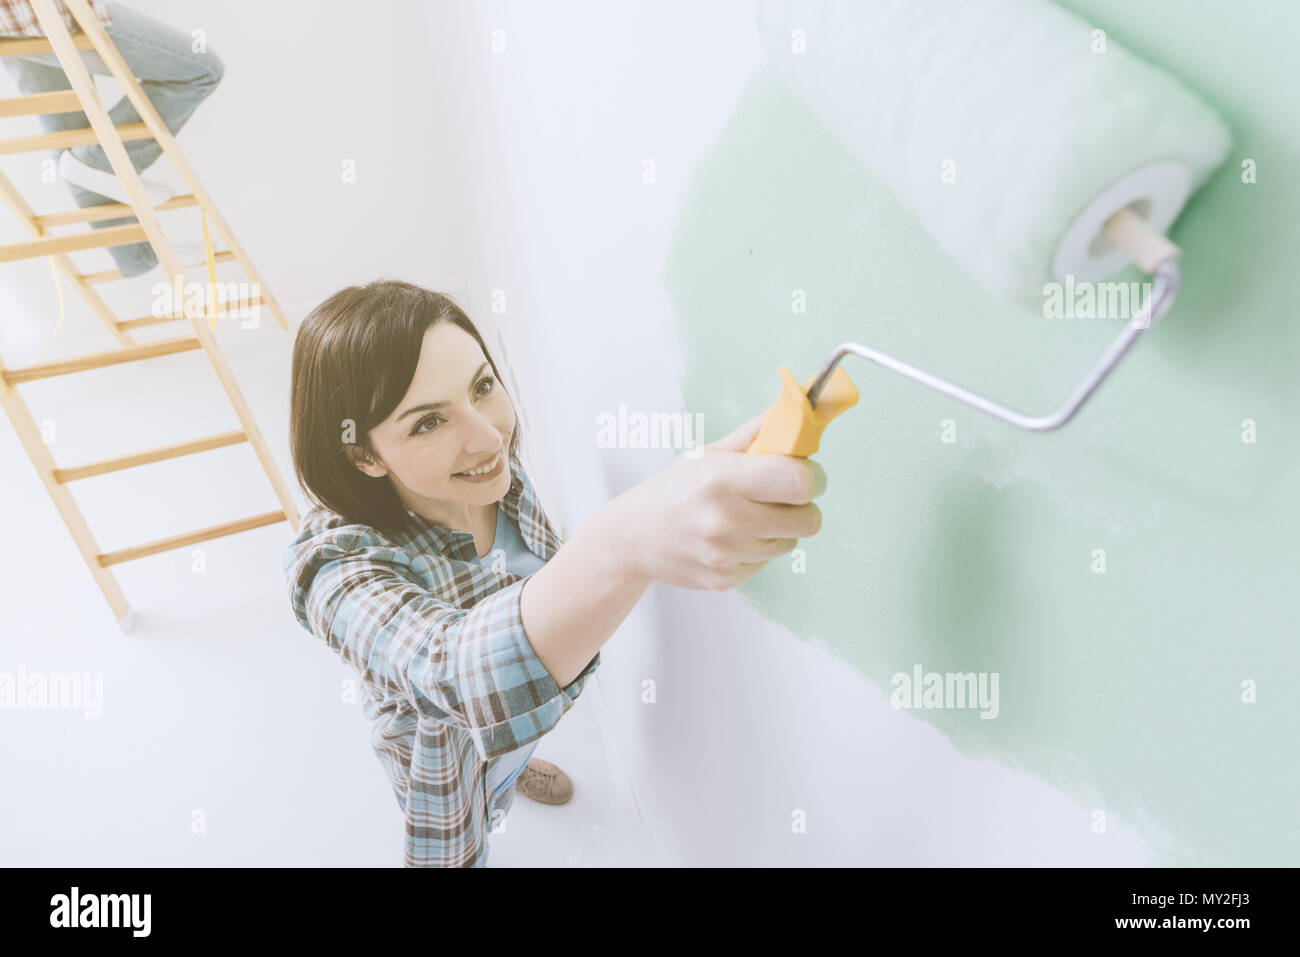 Smiling woman painting a room, she is applying a bright green color using a paint roller - Stock Image